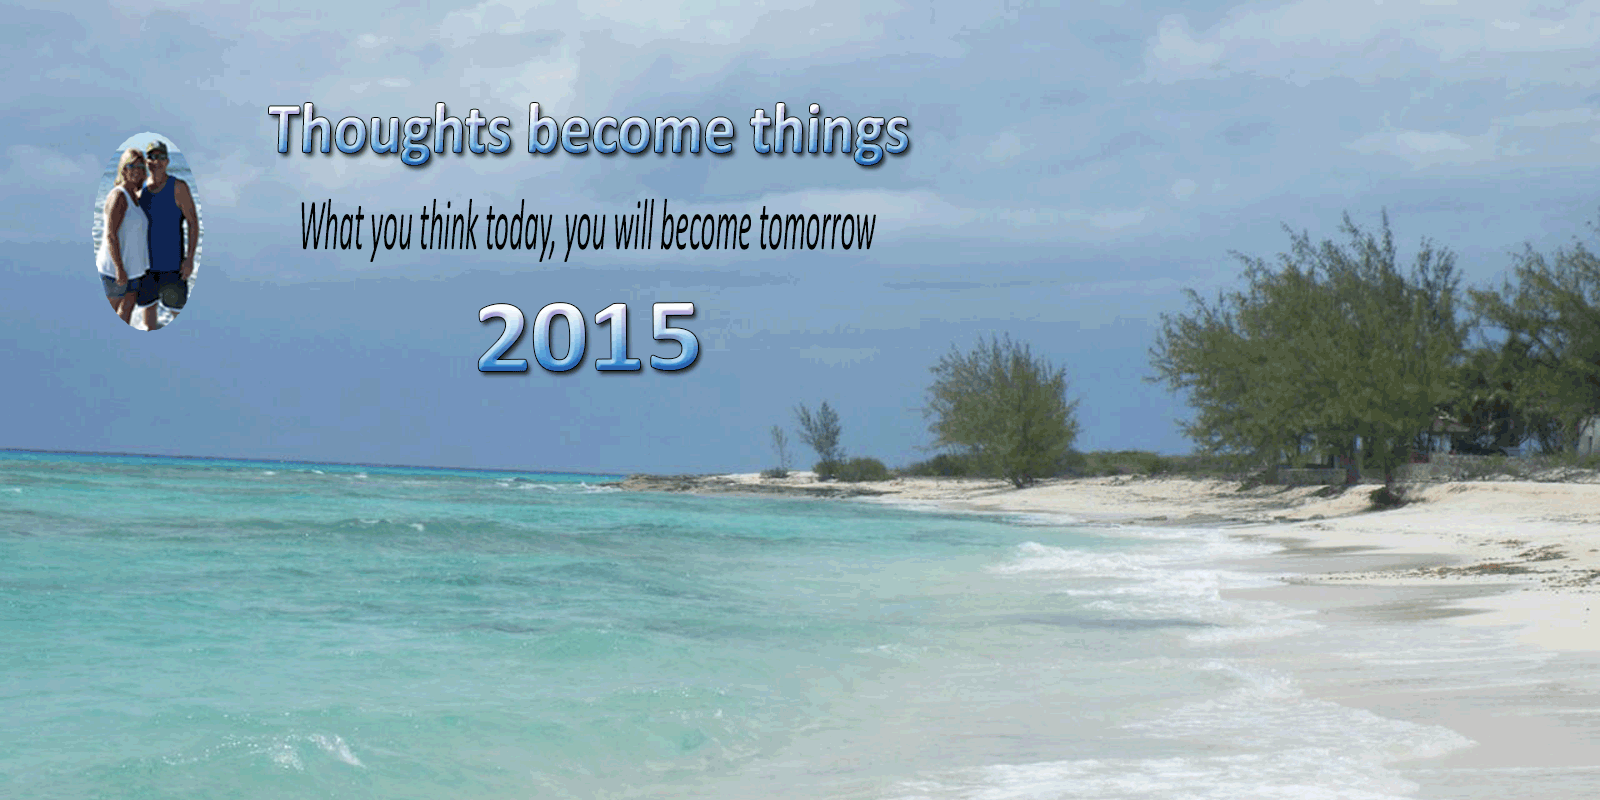 thoughts-become-things-2015